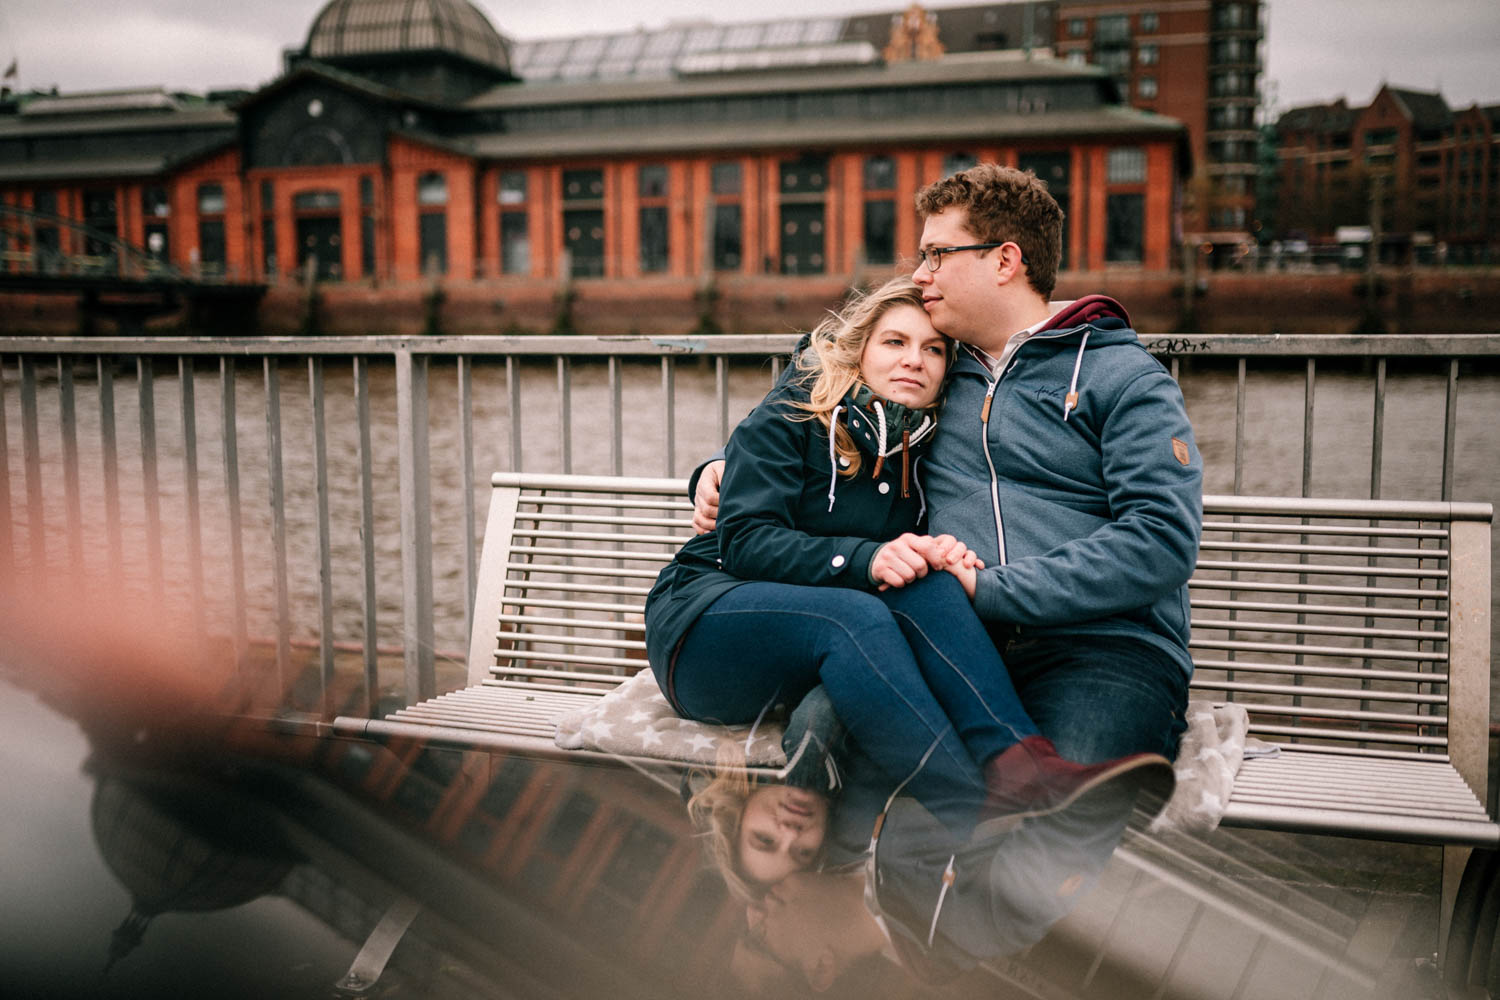 Engagementshooting, Hochzeitsfieber by Photo-Schomburg, Pärchenshoot, Hamburg, Elbe, Hamburger Hafen, Hochzeitsfotograf, Wedding, Coupleshoot-20